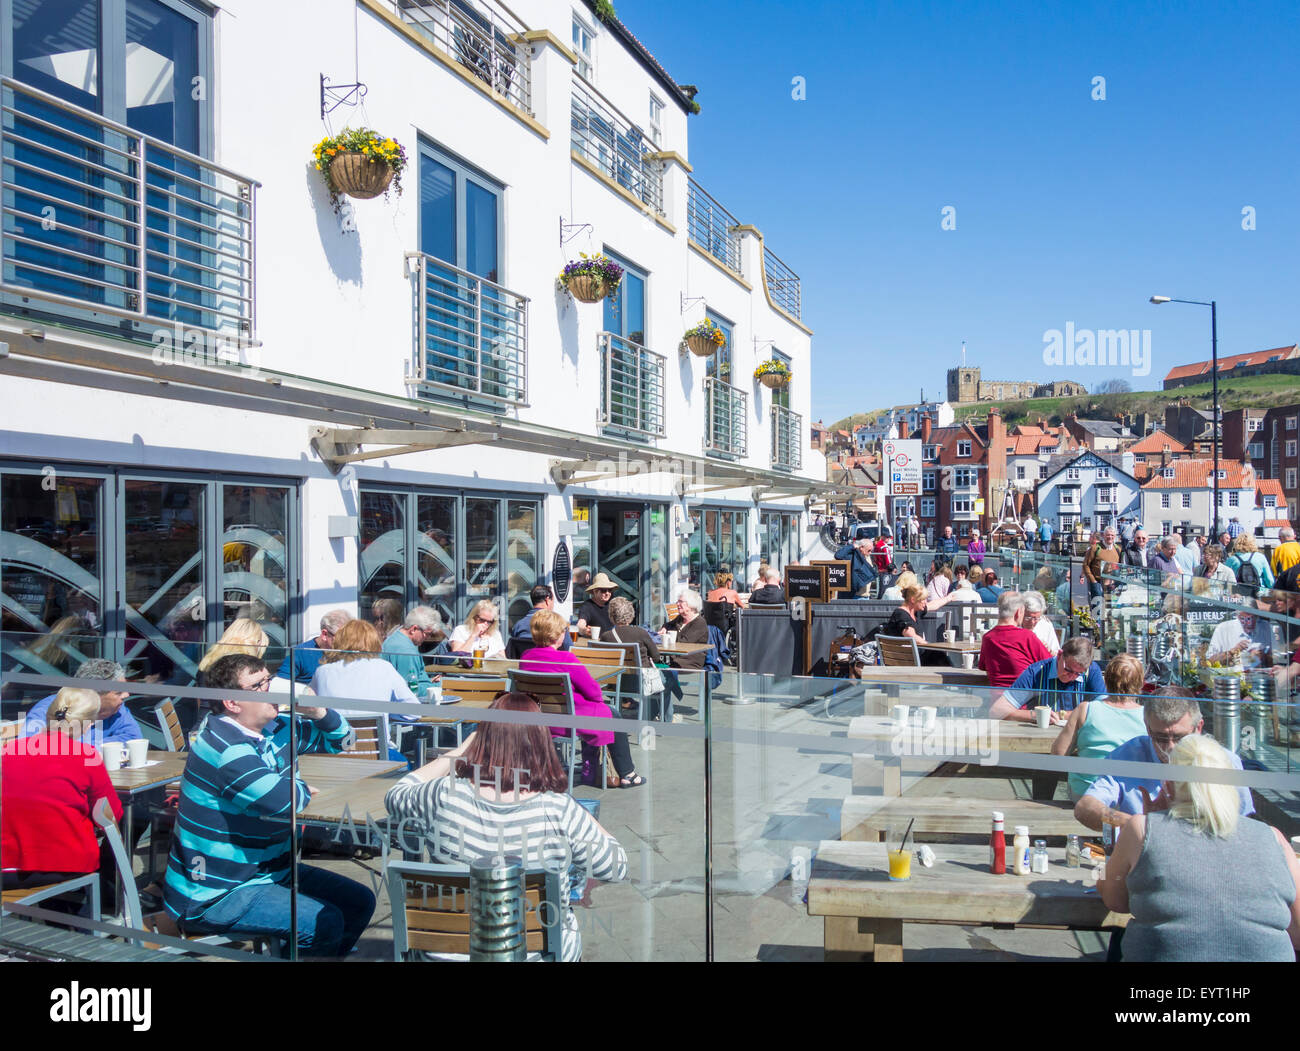 J D Wetherspoon`s The Angel Hotel in Whitby, North Yorkshire, England, UK - Stock Image